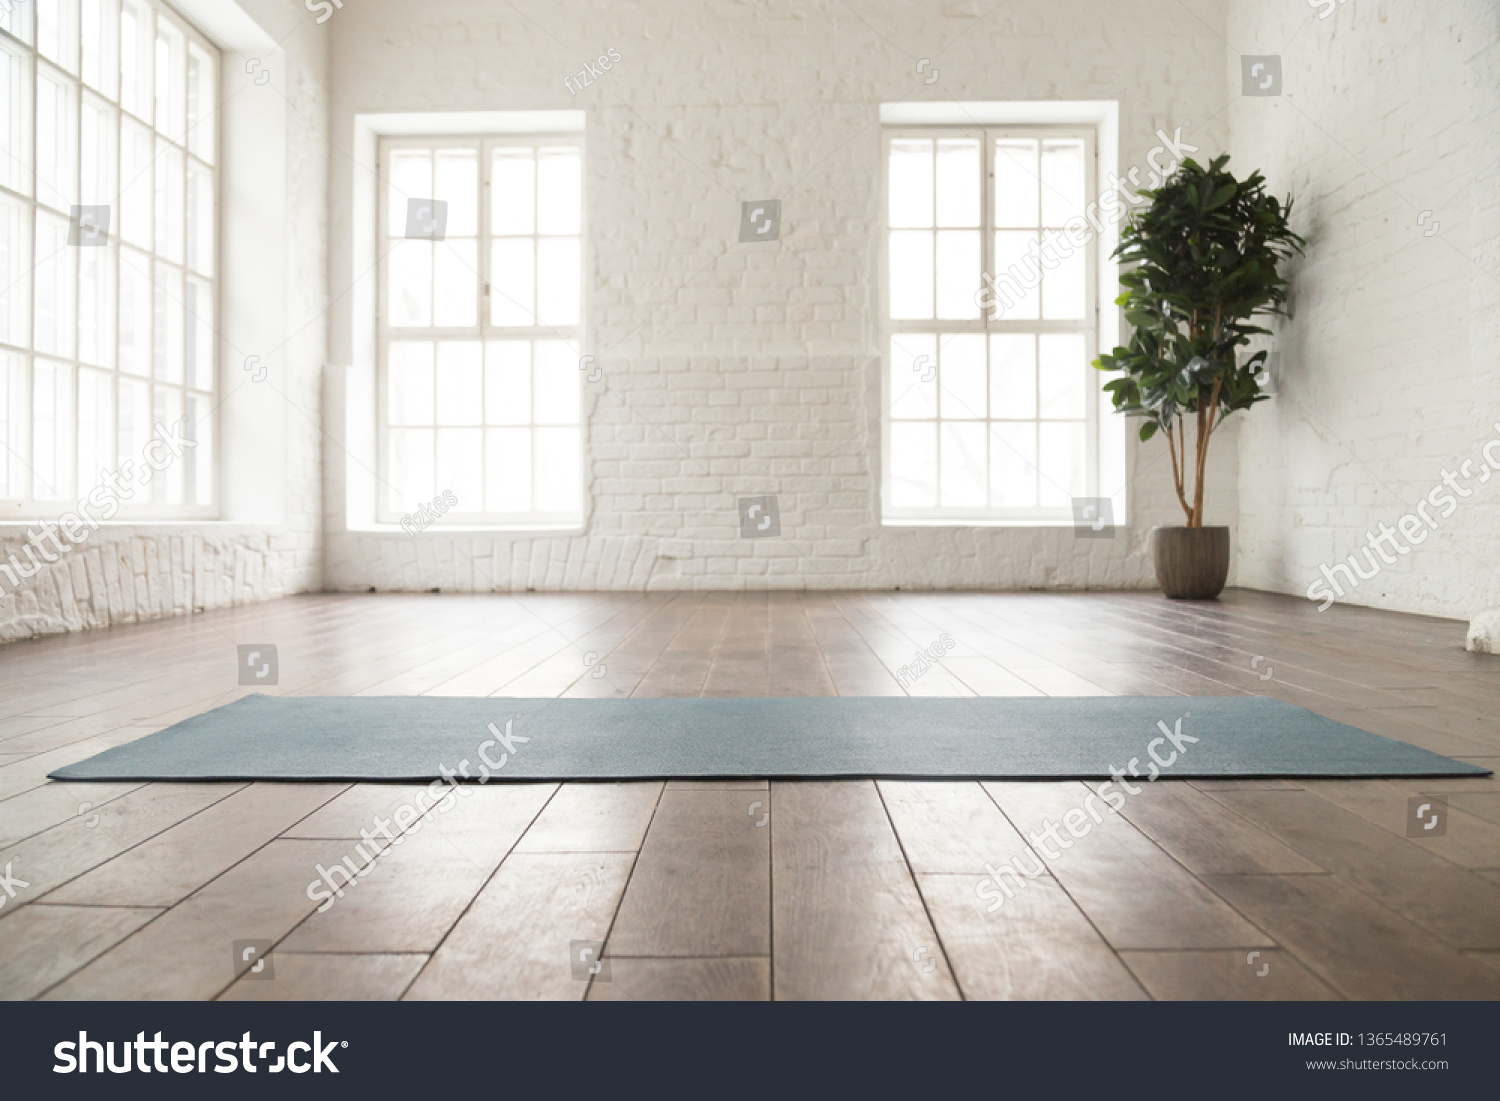 Unrolled yoga mat on wooden floor in modern fitness center or at home with big windows and white brick walls, comfortable space for doing sport exercises, meditating, yoga equipment #1365489761